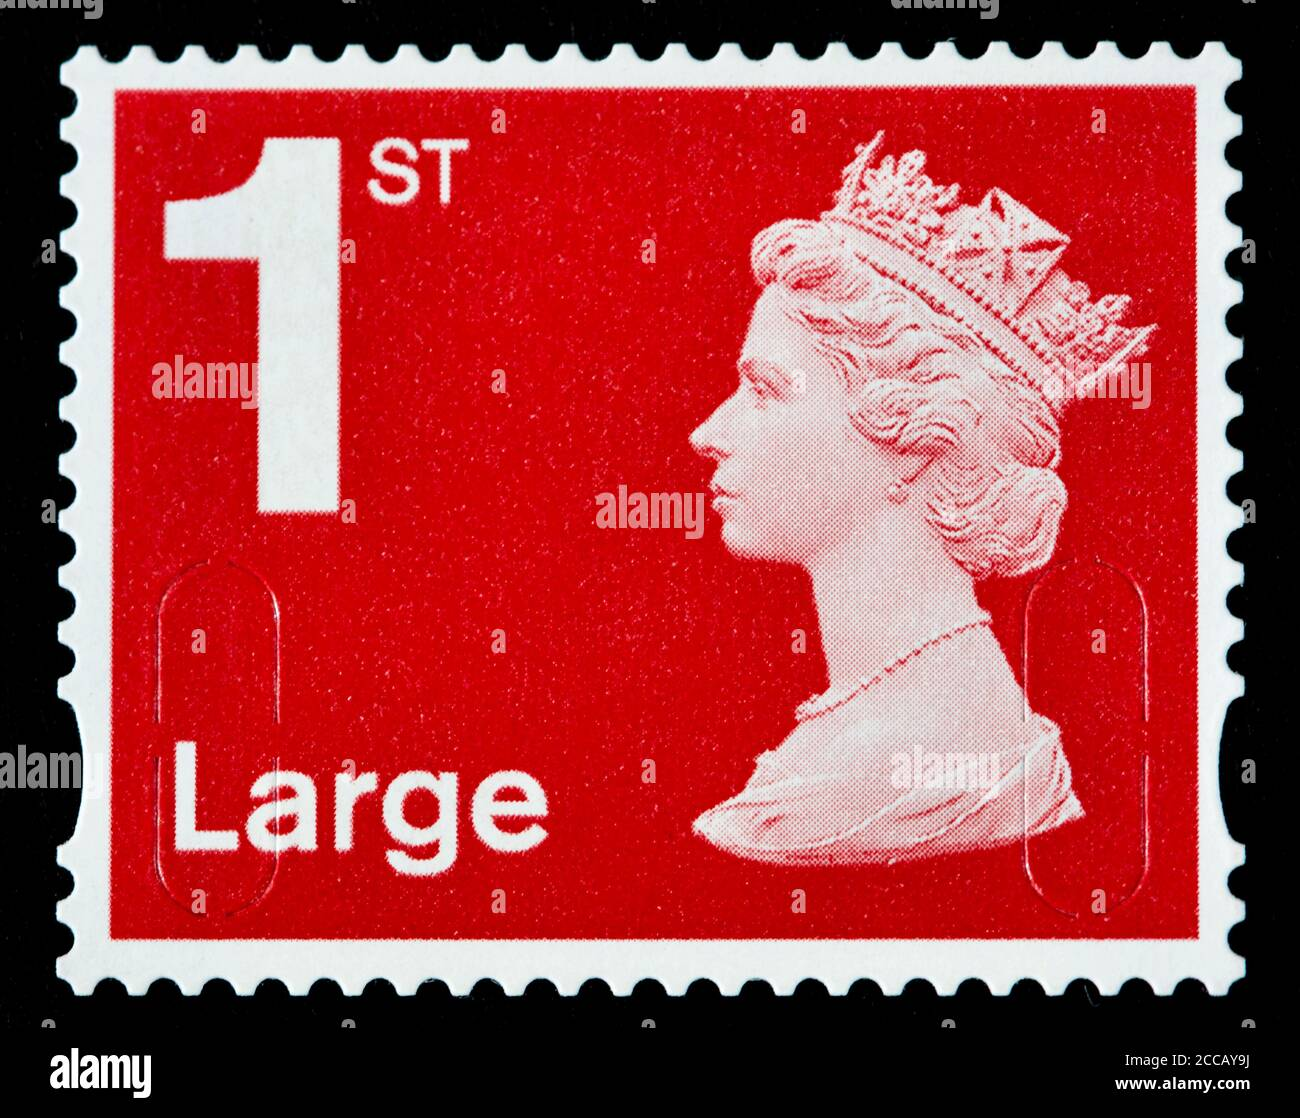 1st Class Stamp High Resolution Stock